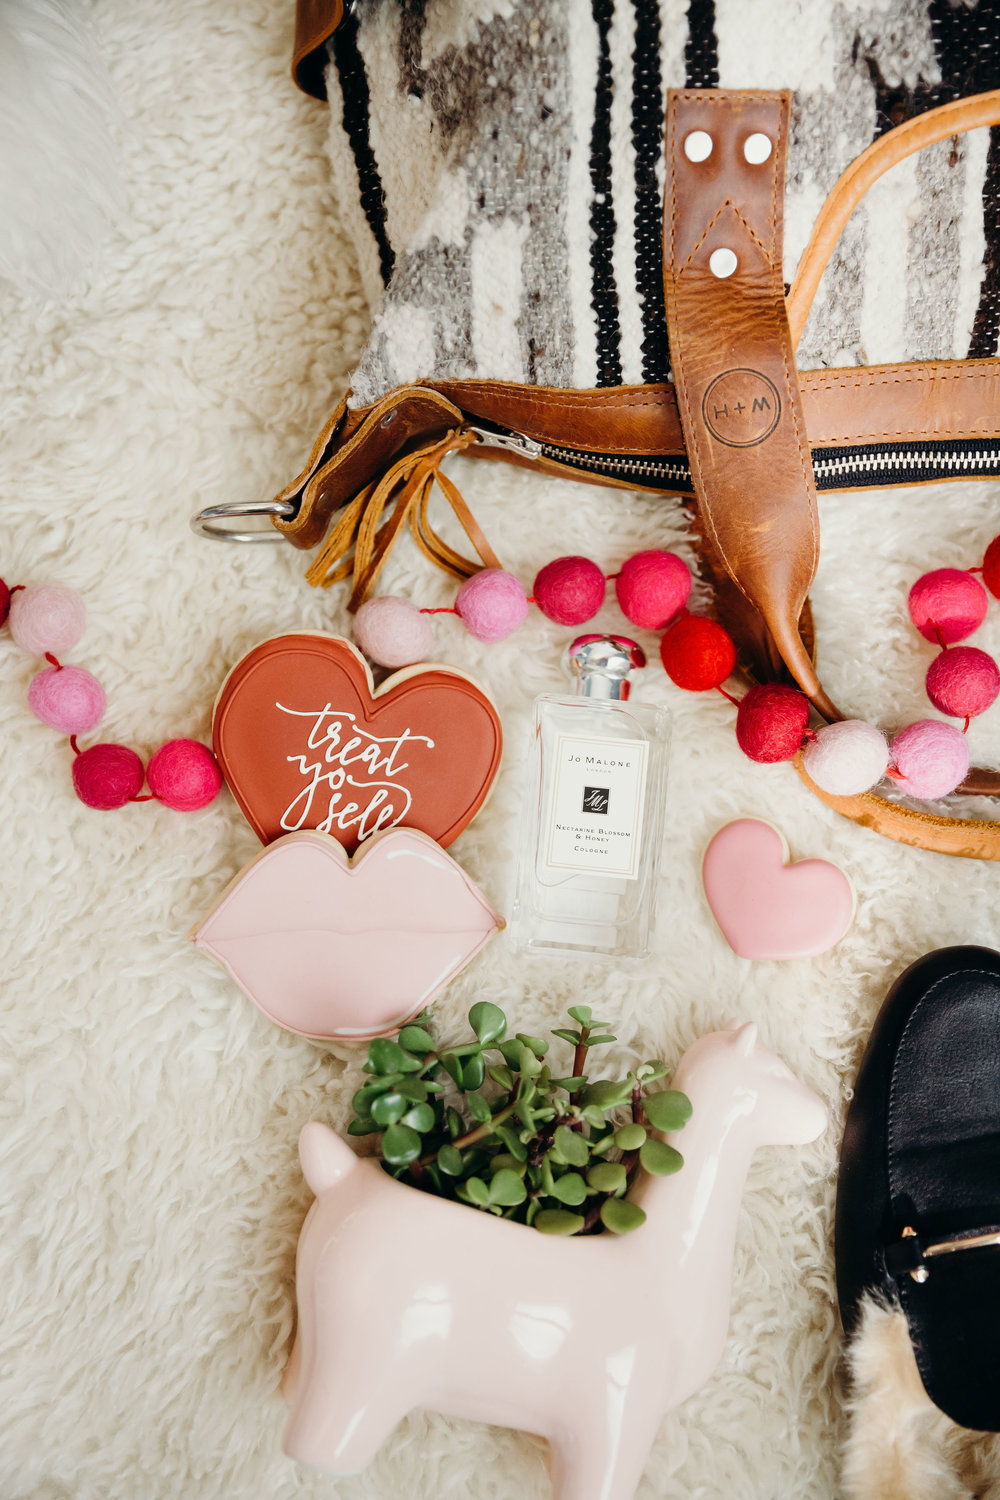 Top Five:TreatYo SelfValentine's DayEdition - We have come up with our TOP FIVEperfect girly Galentine's gifts you shouldTreat Yo Self with this Valentine's Day,because well, you deserve it!